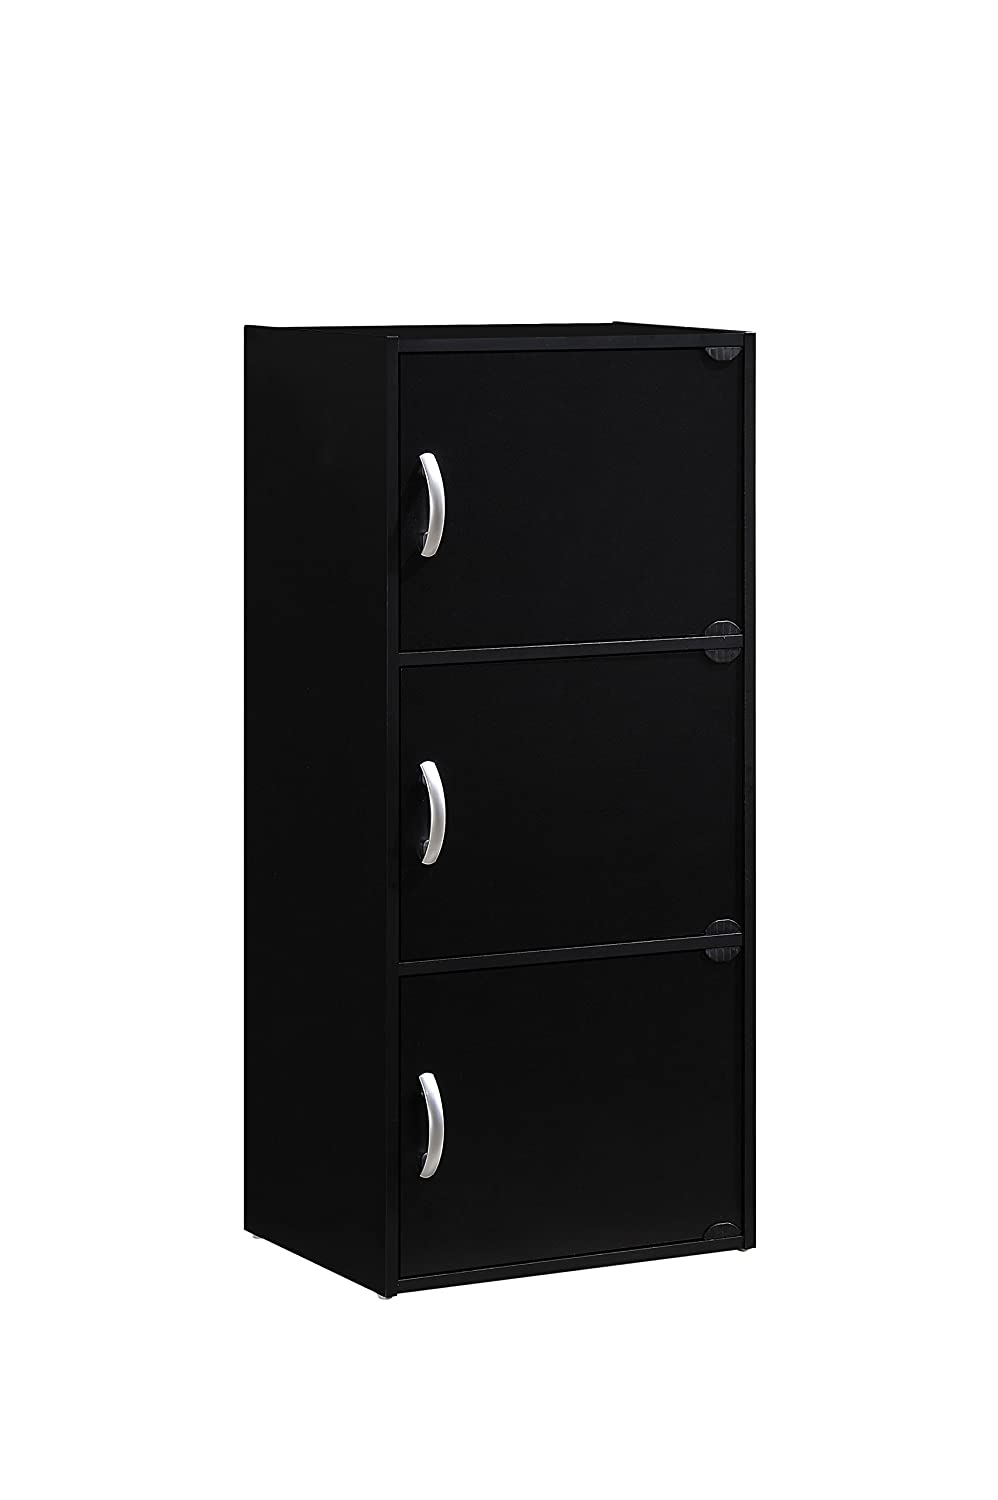 Hodedah 3 Door, Three Shleves, Enclosed Storage Cabinet, Black